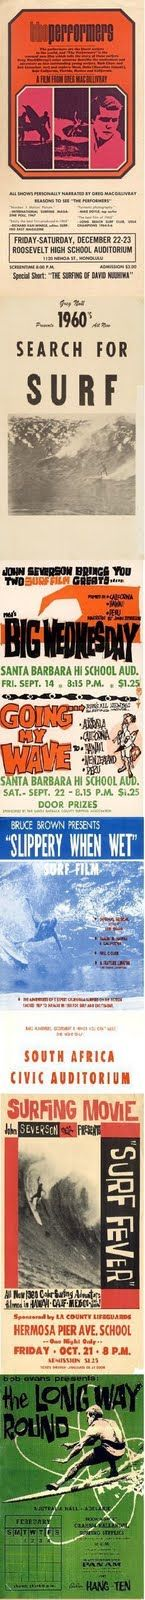 Great surf movies